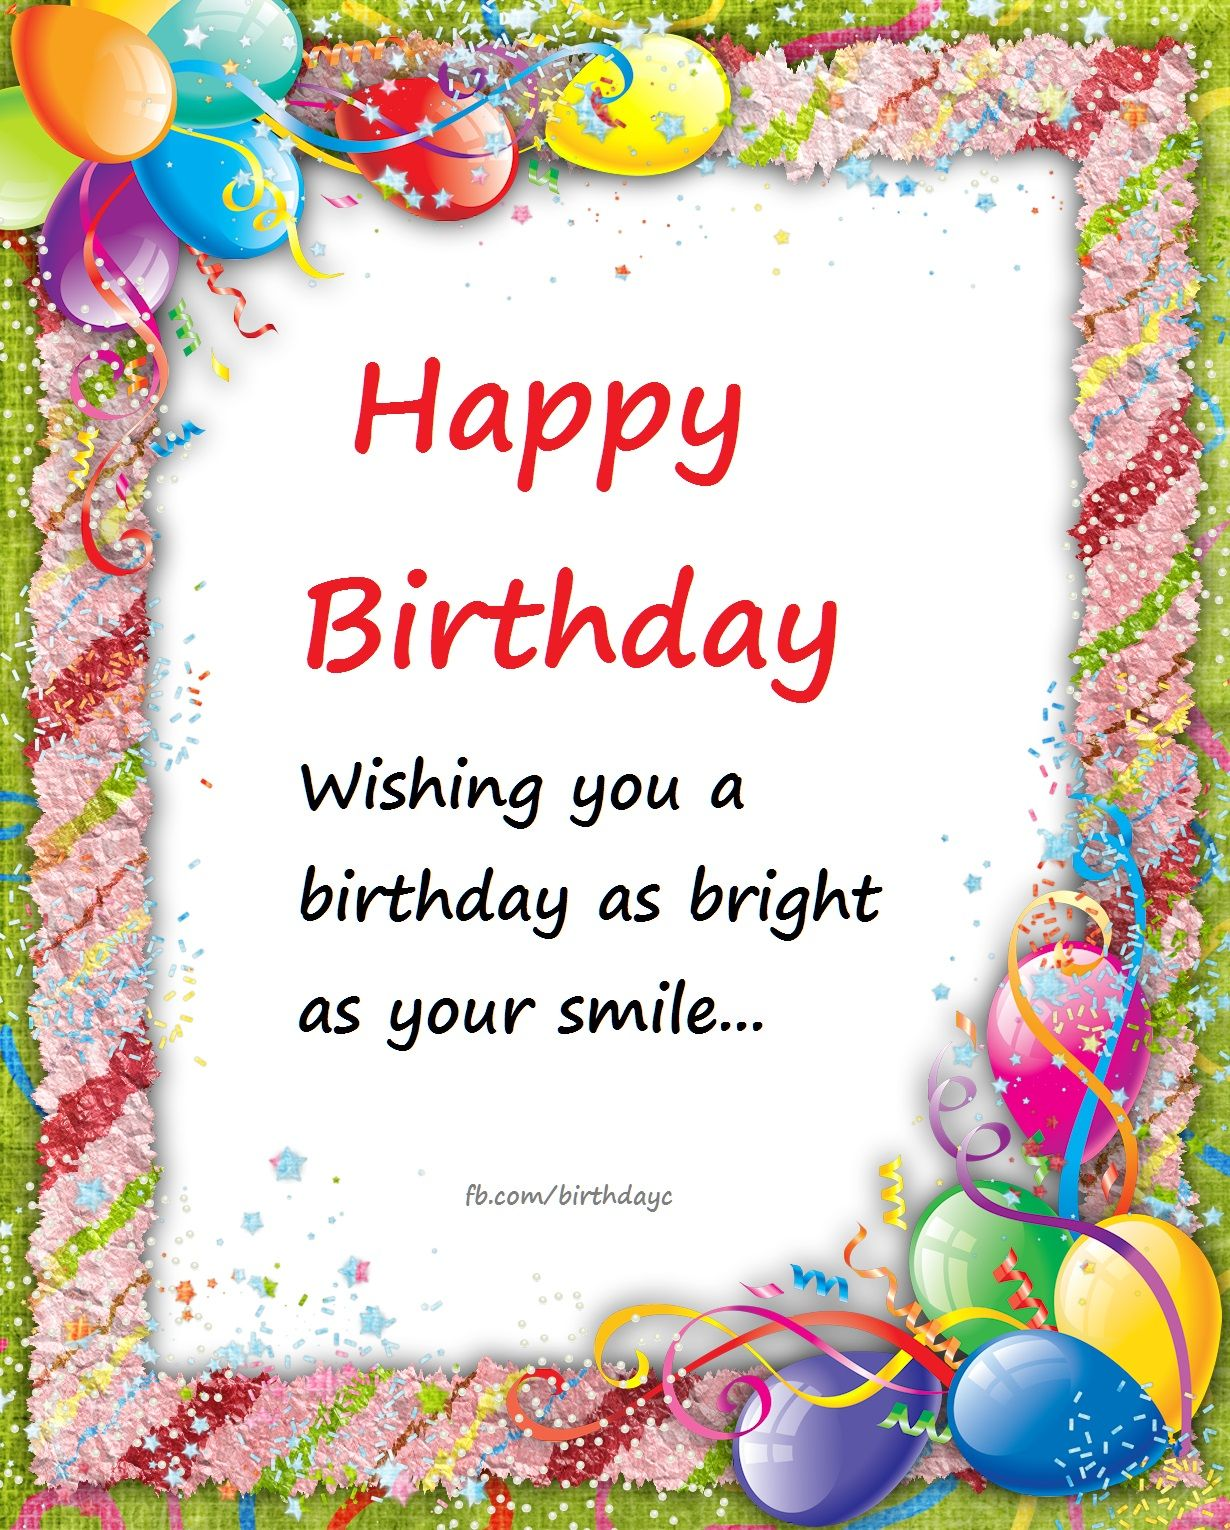 Happy Birthday ! Wishing You A Birthday As Bright As Your